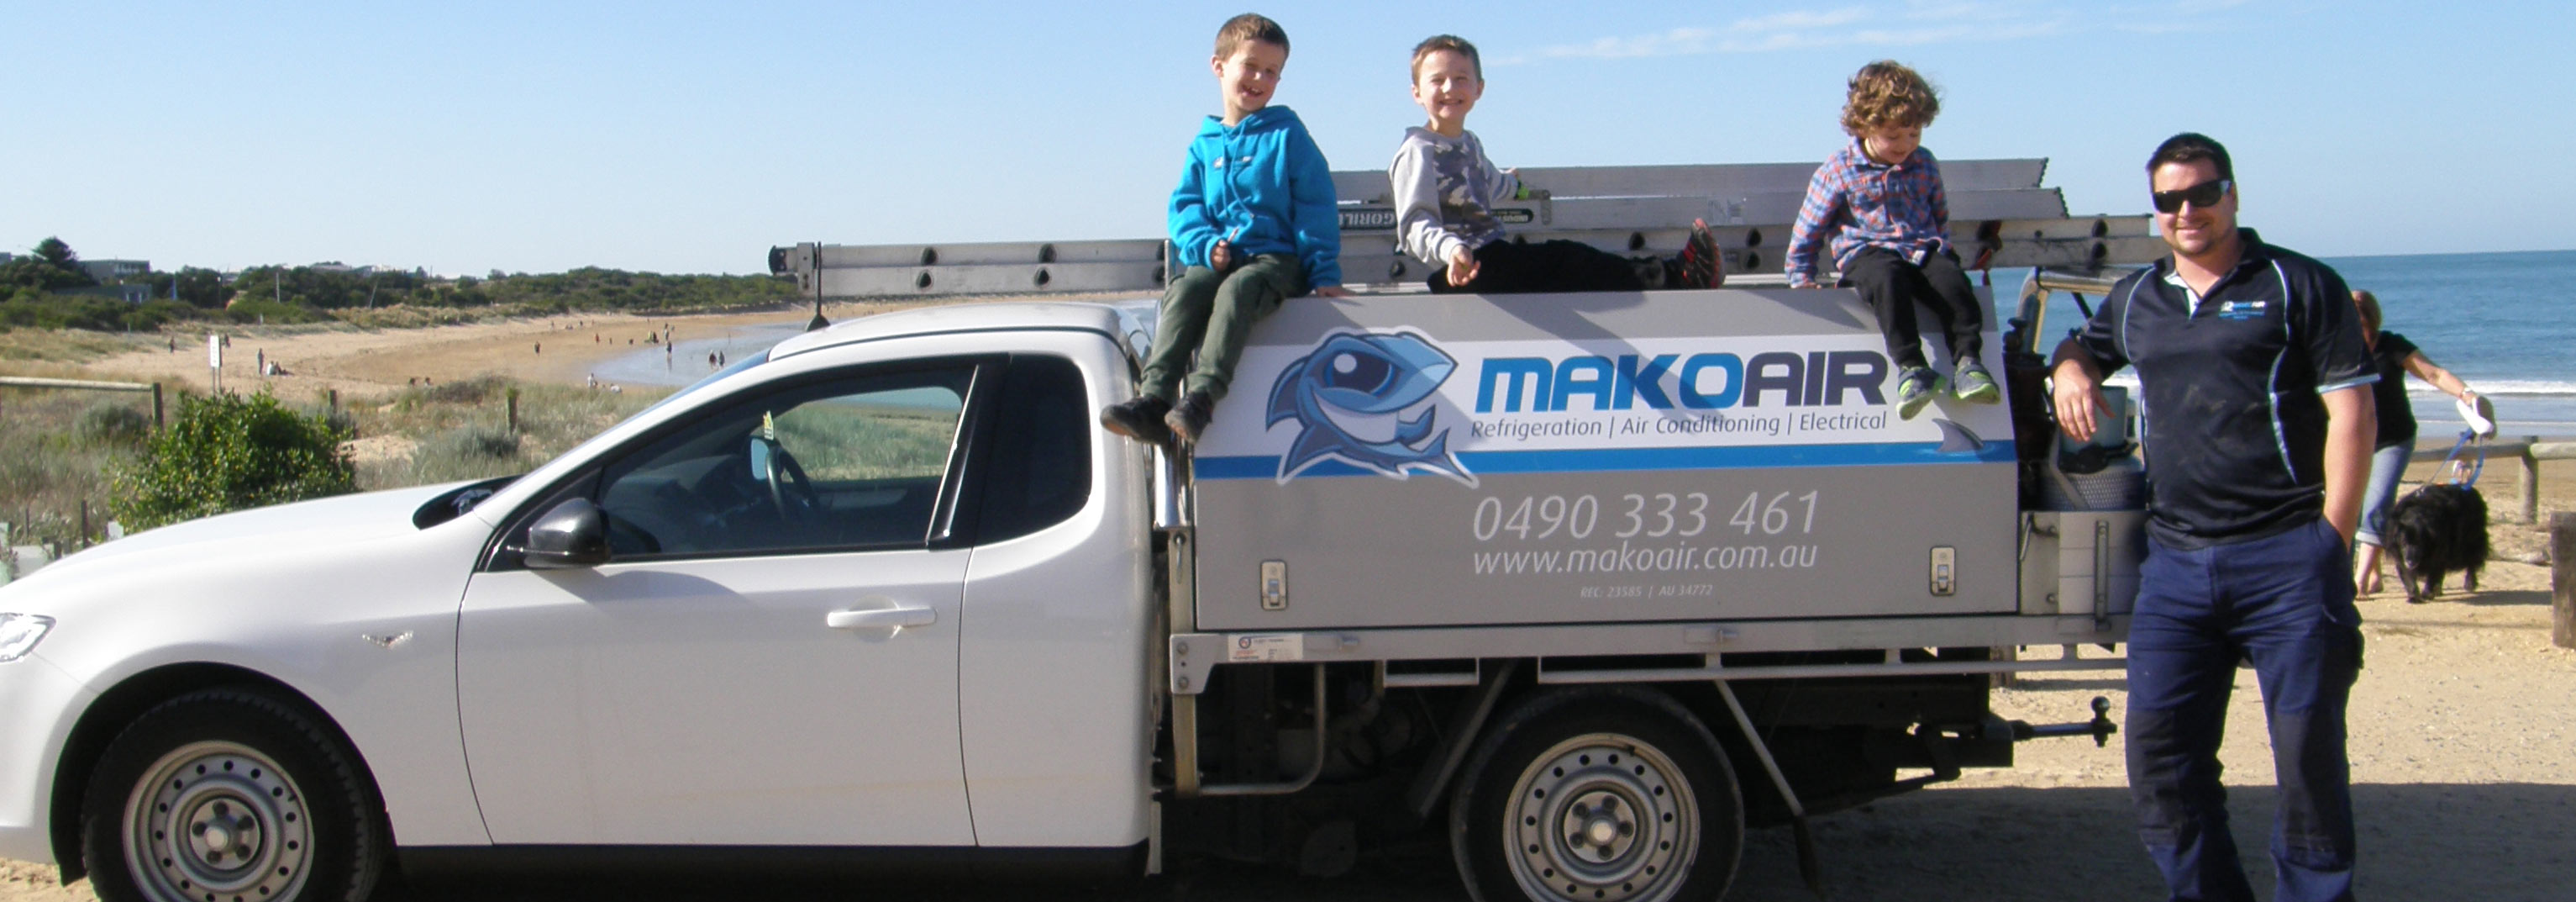 Mako Air Refrigeration and Air Conditioning